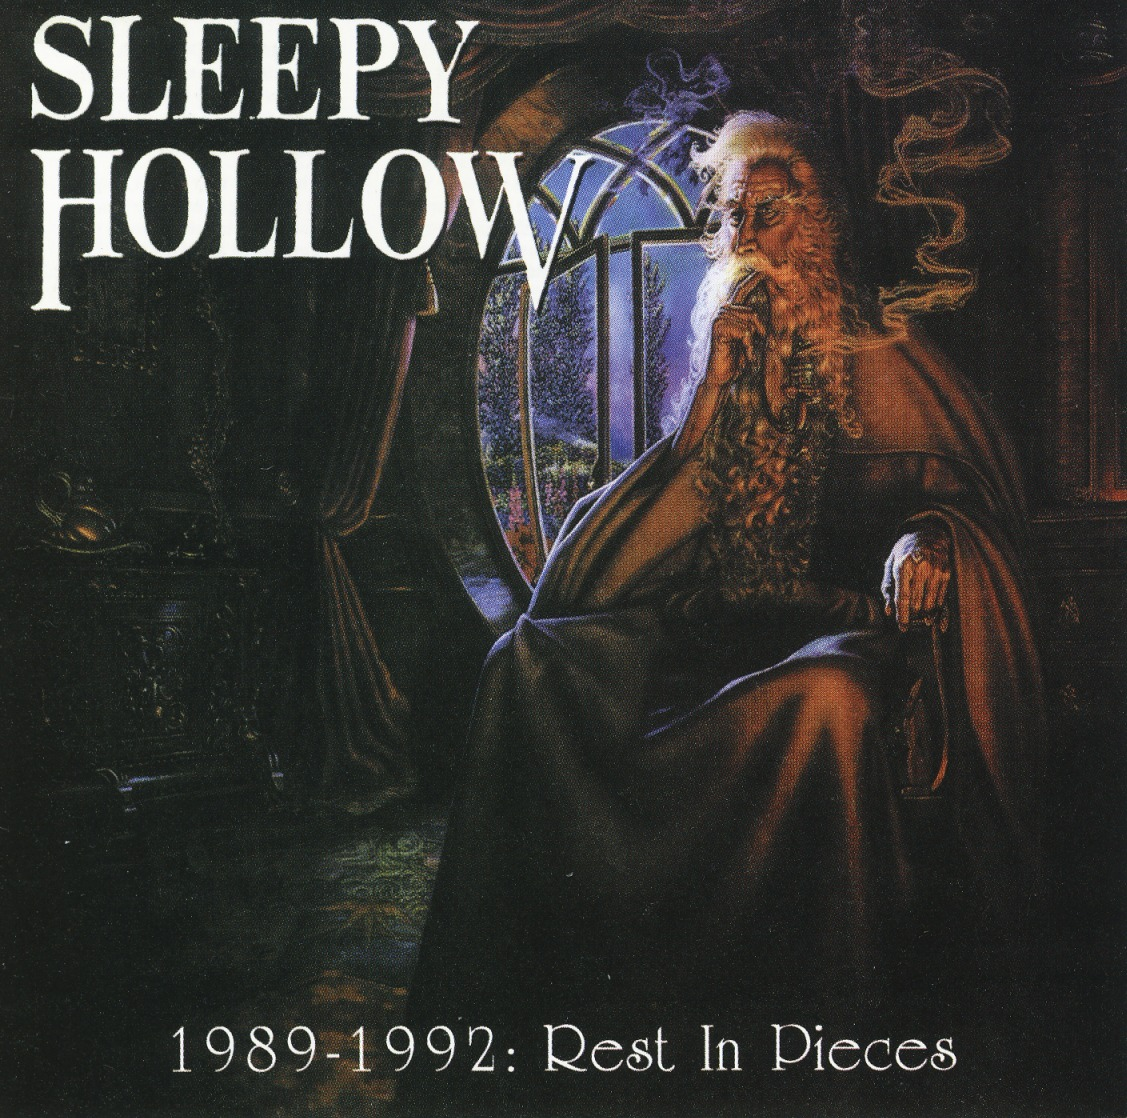 SLEEPY HOLLOW (US) / 1989-1992: Rest In Pieces